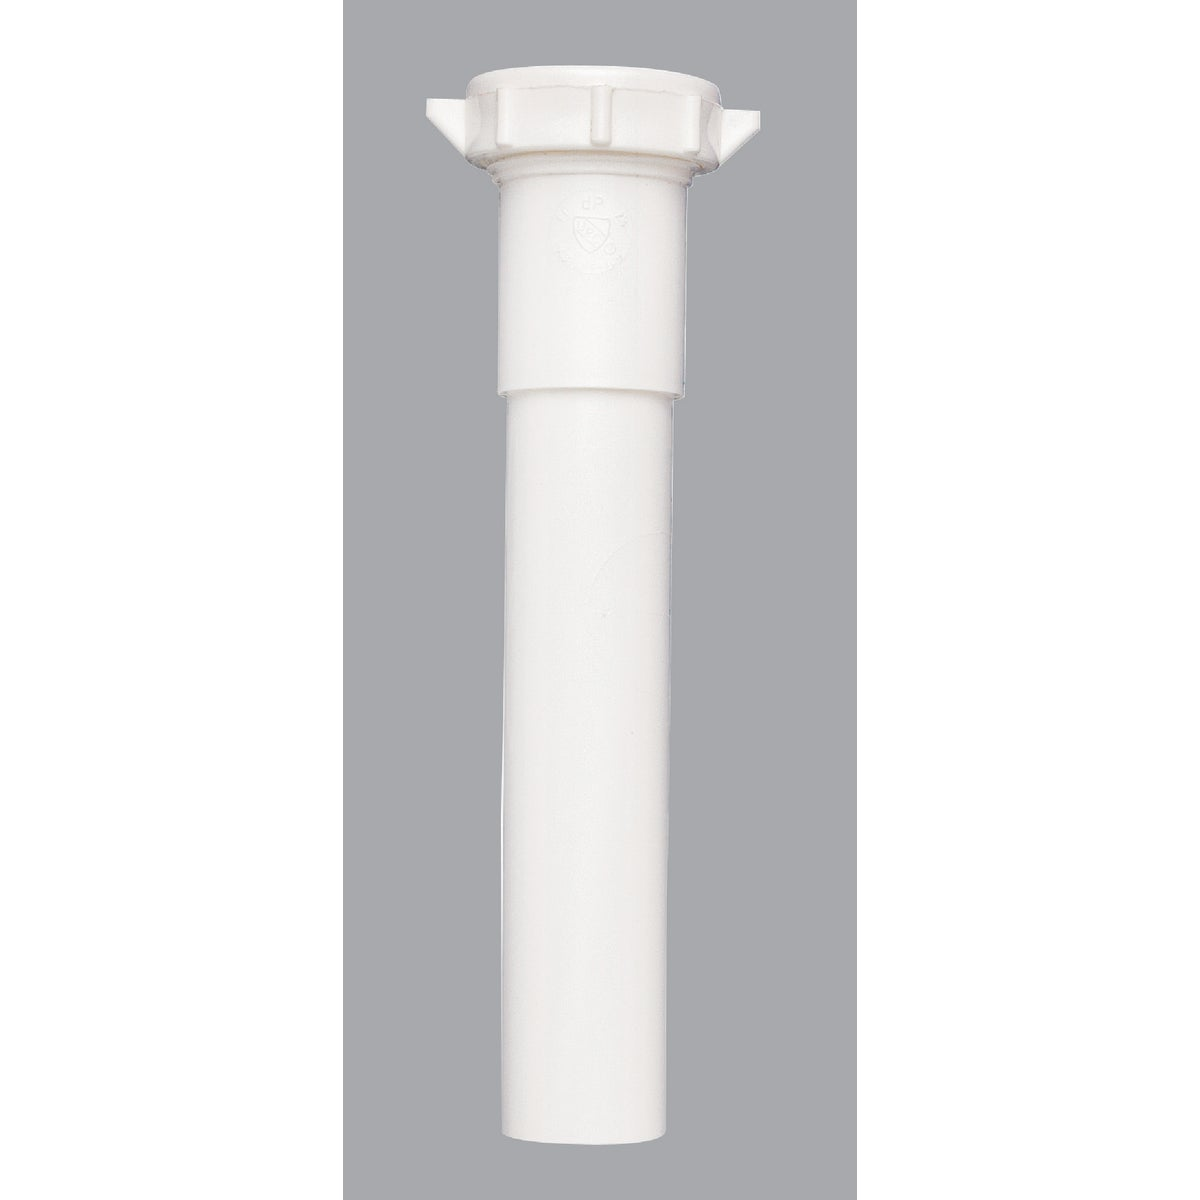 1-1/2X12 WHT SJ EXT TUBE - 40-12WK by Plumb Pak/keeney Mfg